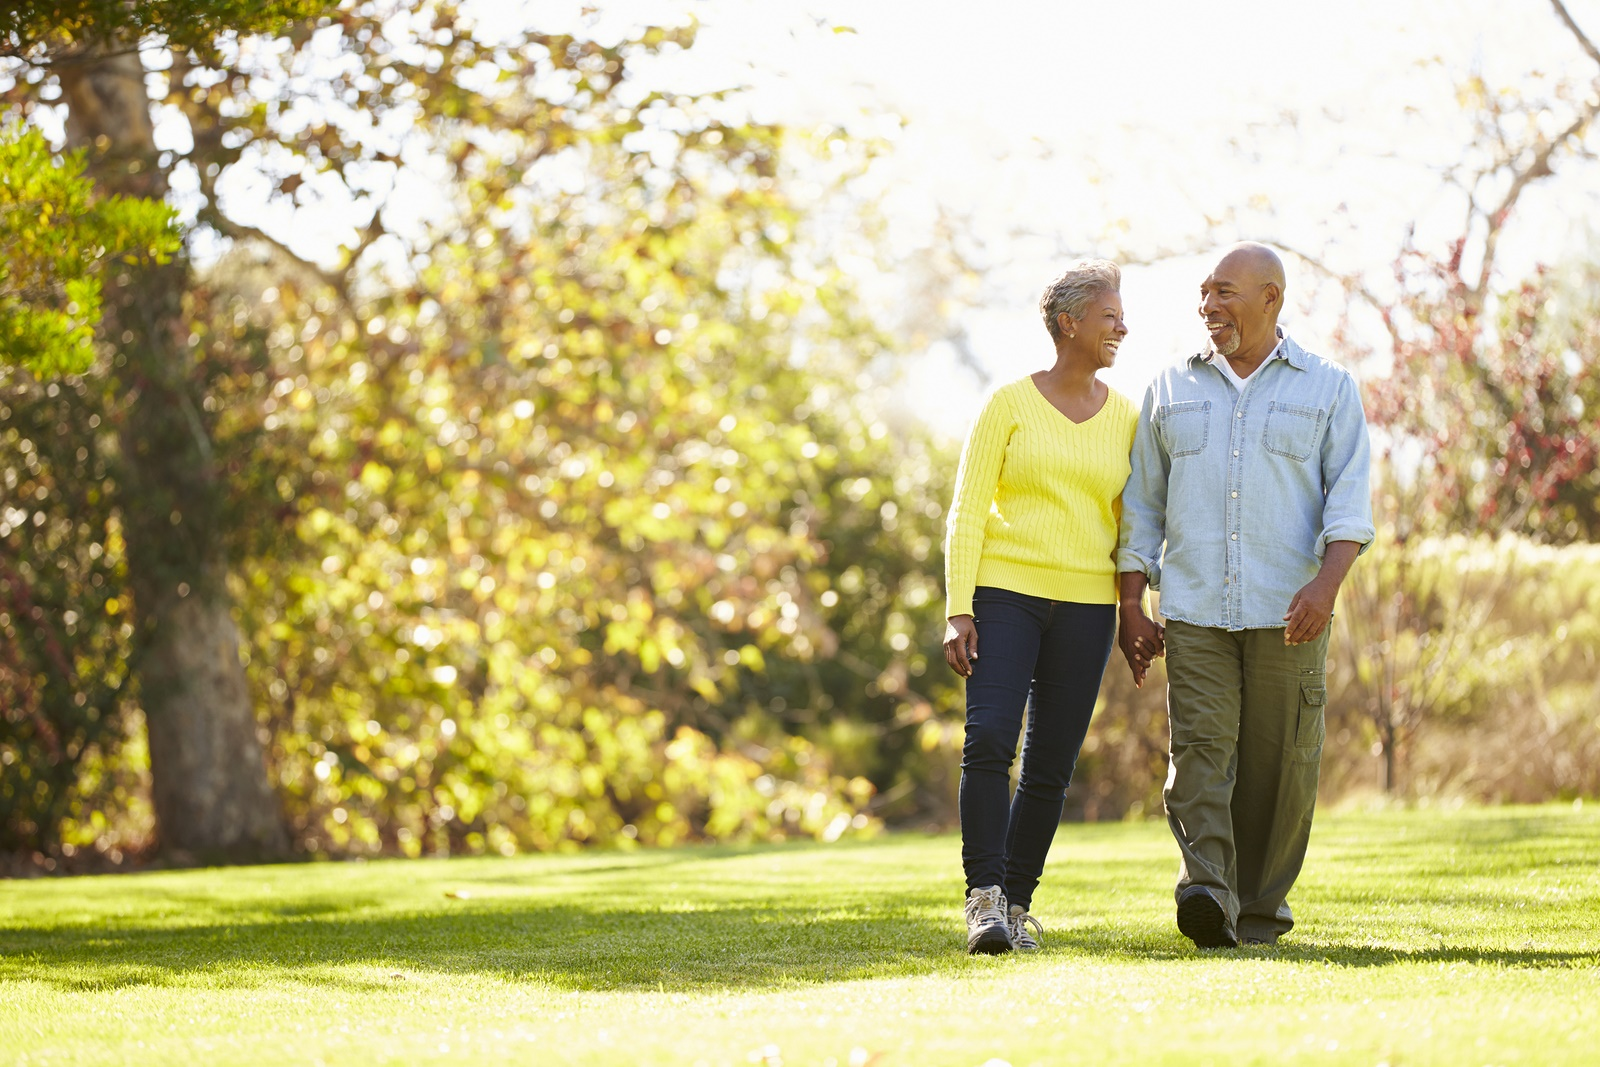 Prevent osteoporosis by leading an active lifestyle